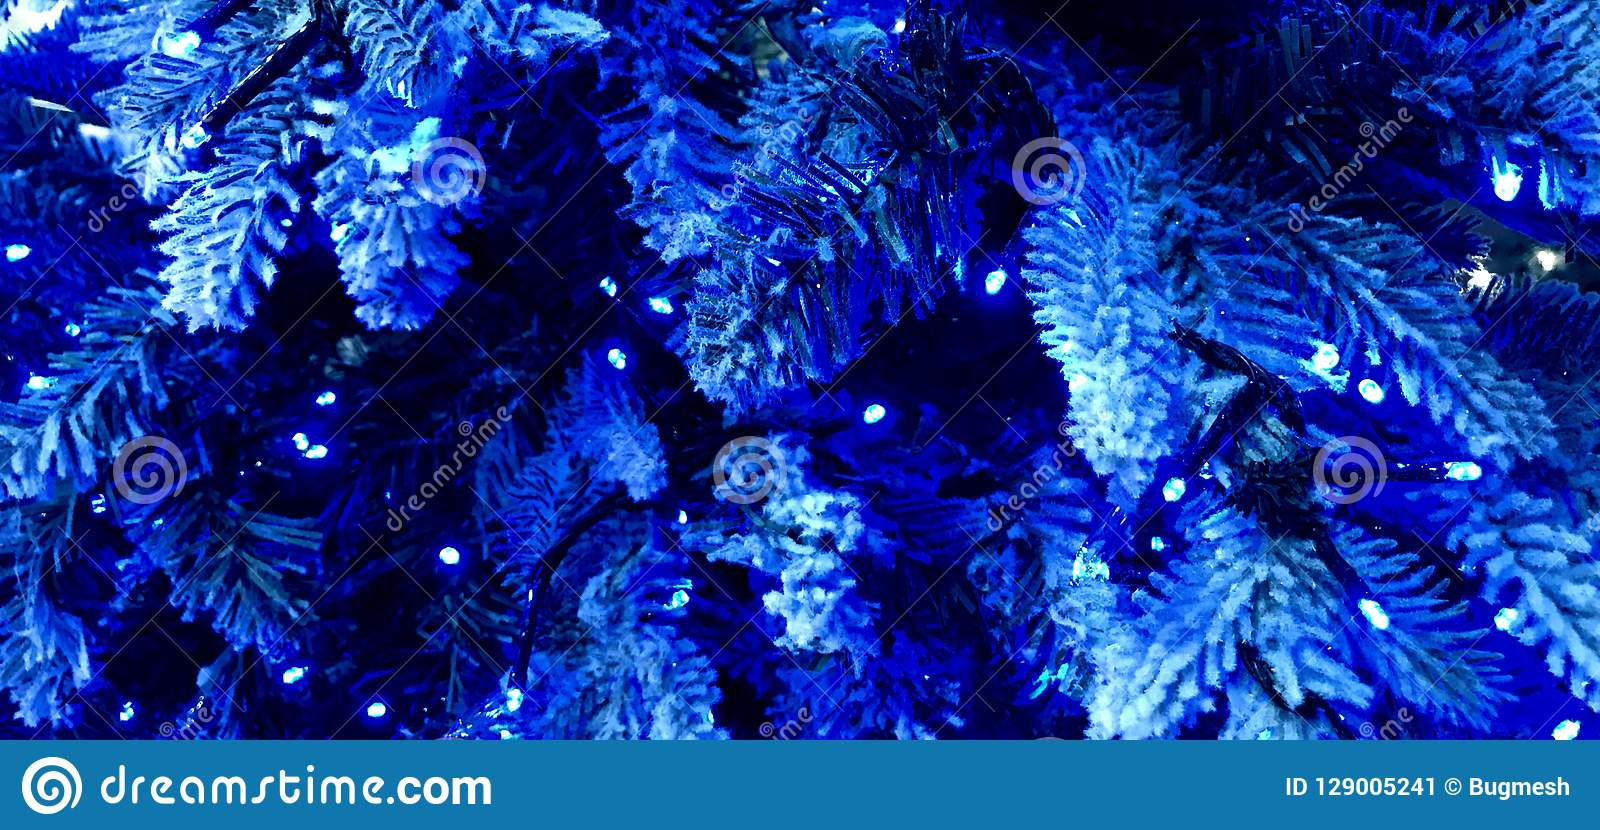 White Christmas Tree With Blue Lights.Blue Christmas White Frocked Christmas Tree With Blue